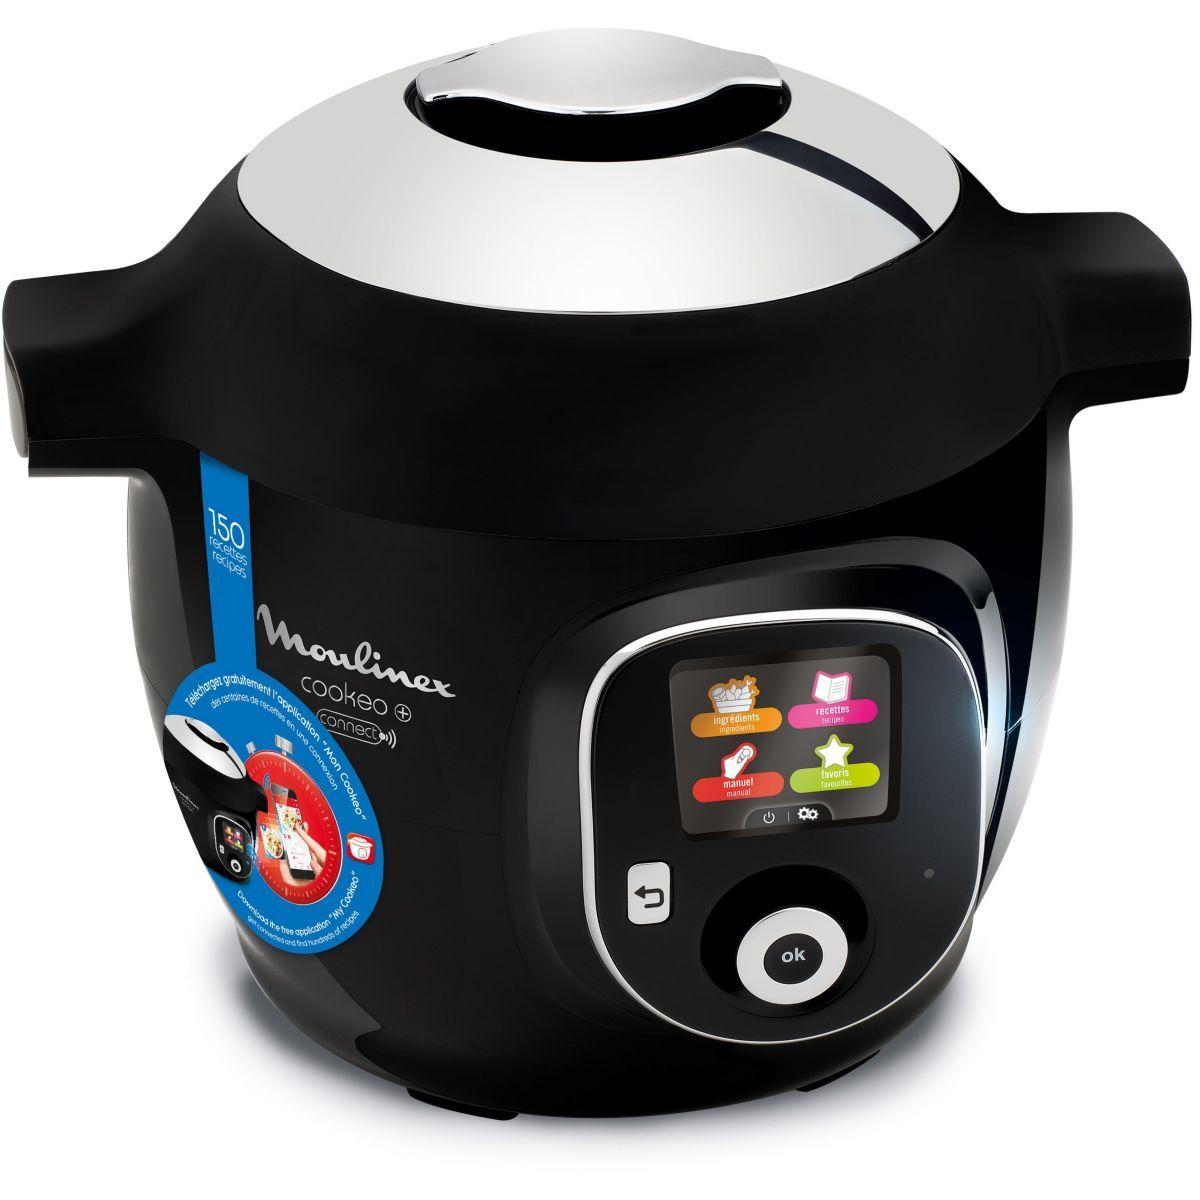 Cook�o connect� moulinex cookeo + connect yy2942fb (photo)